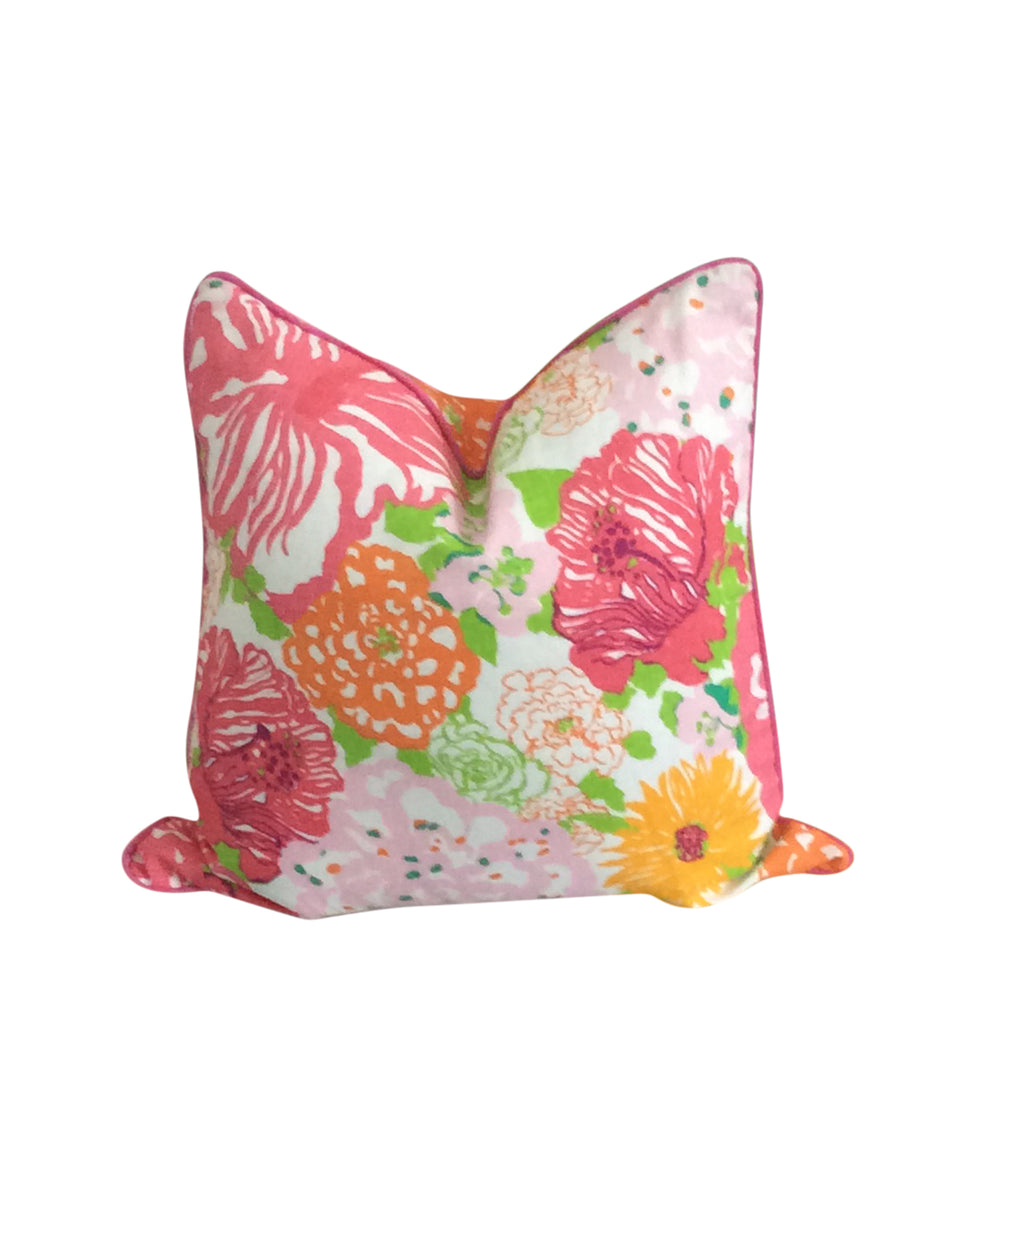 Lilly Pulitzer Heritage Floral Fabric Pink Pillow Cover by Lilly and Co.